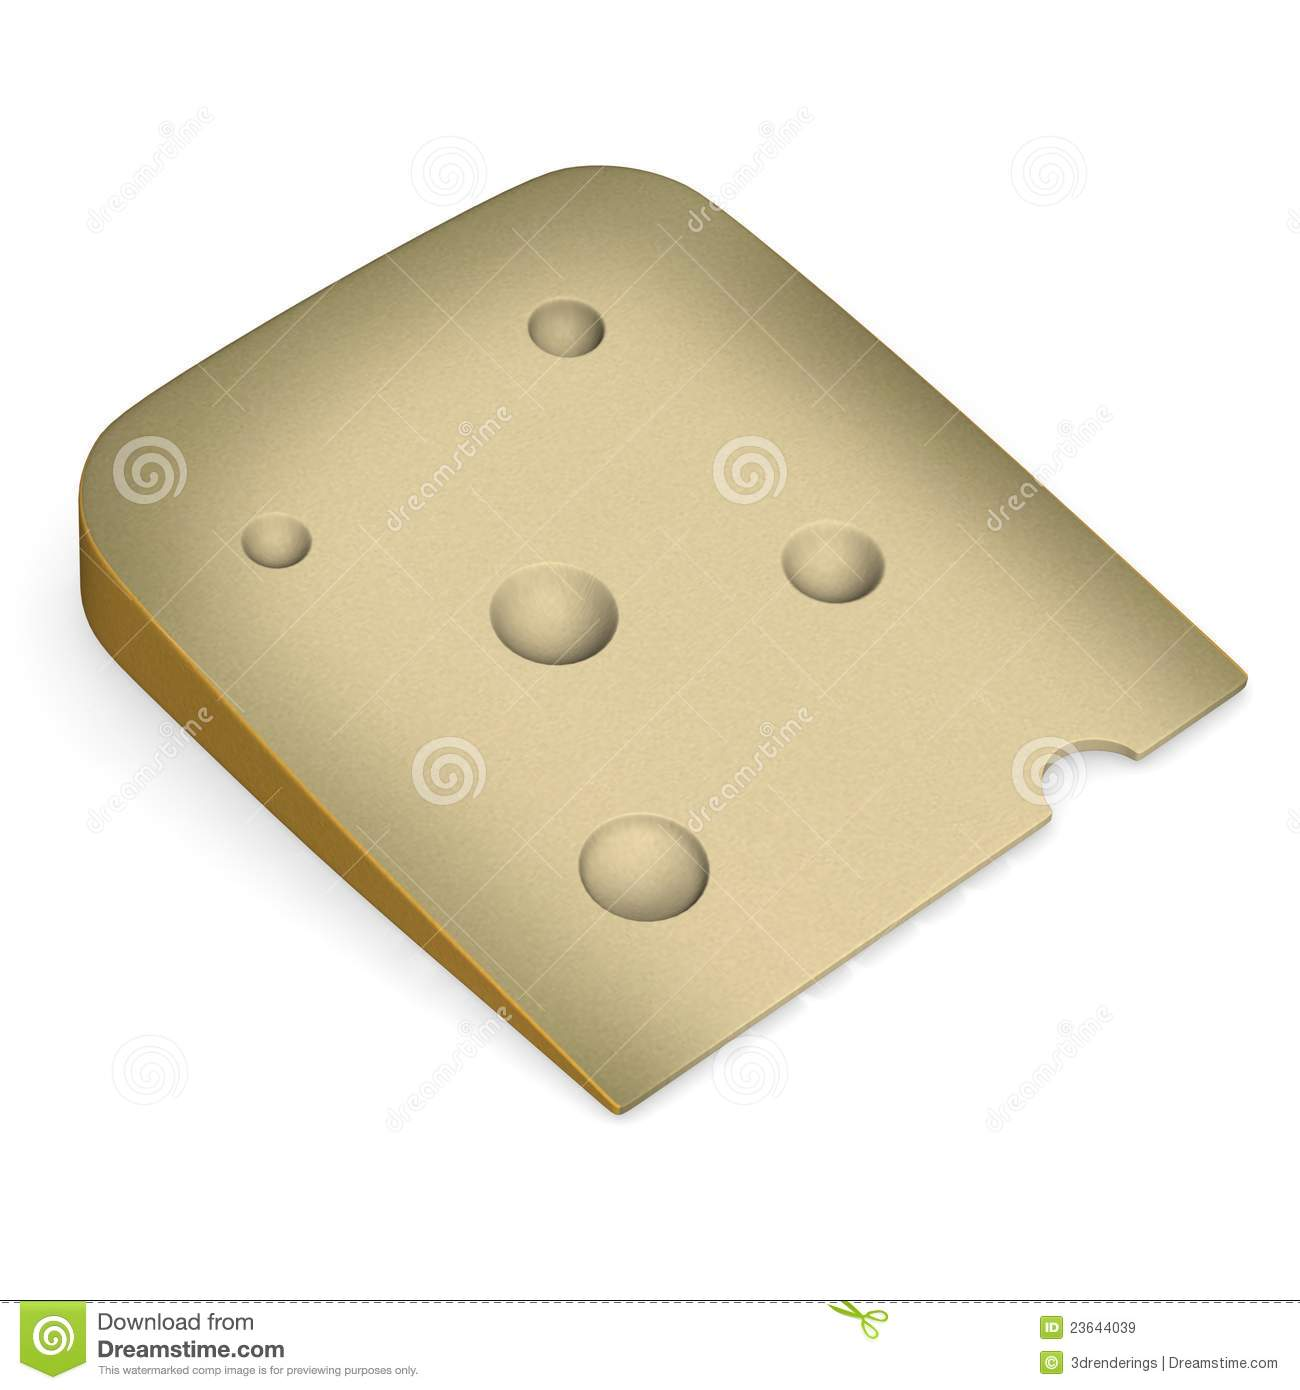 Chesse Slice Royalty Free Stock Images - Image: 23644039